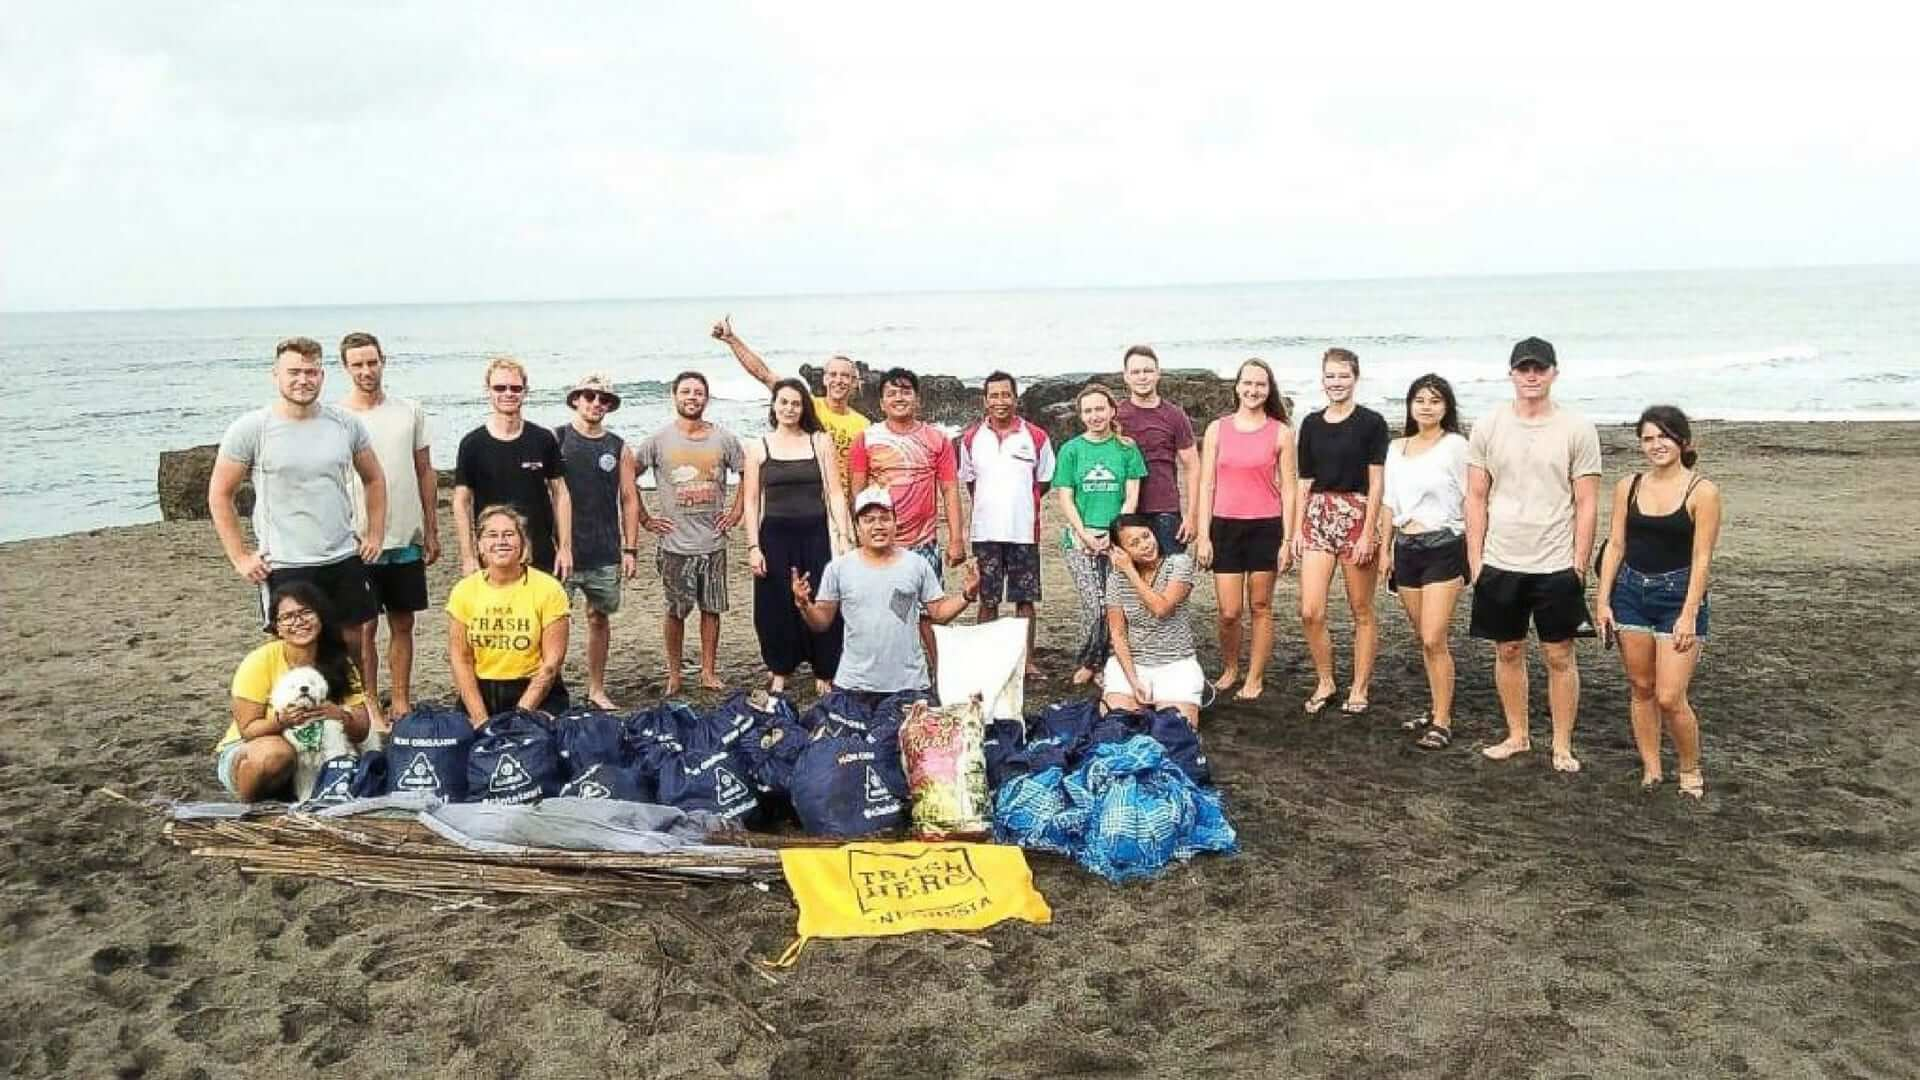 A group picture of students and filled garbage bags at the beach in Bali.